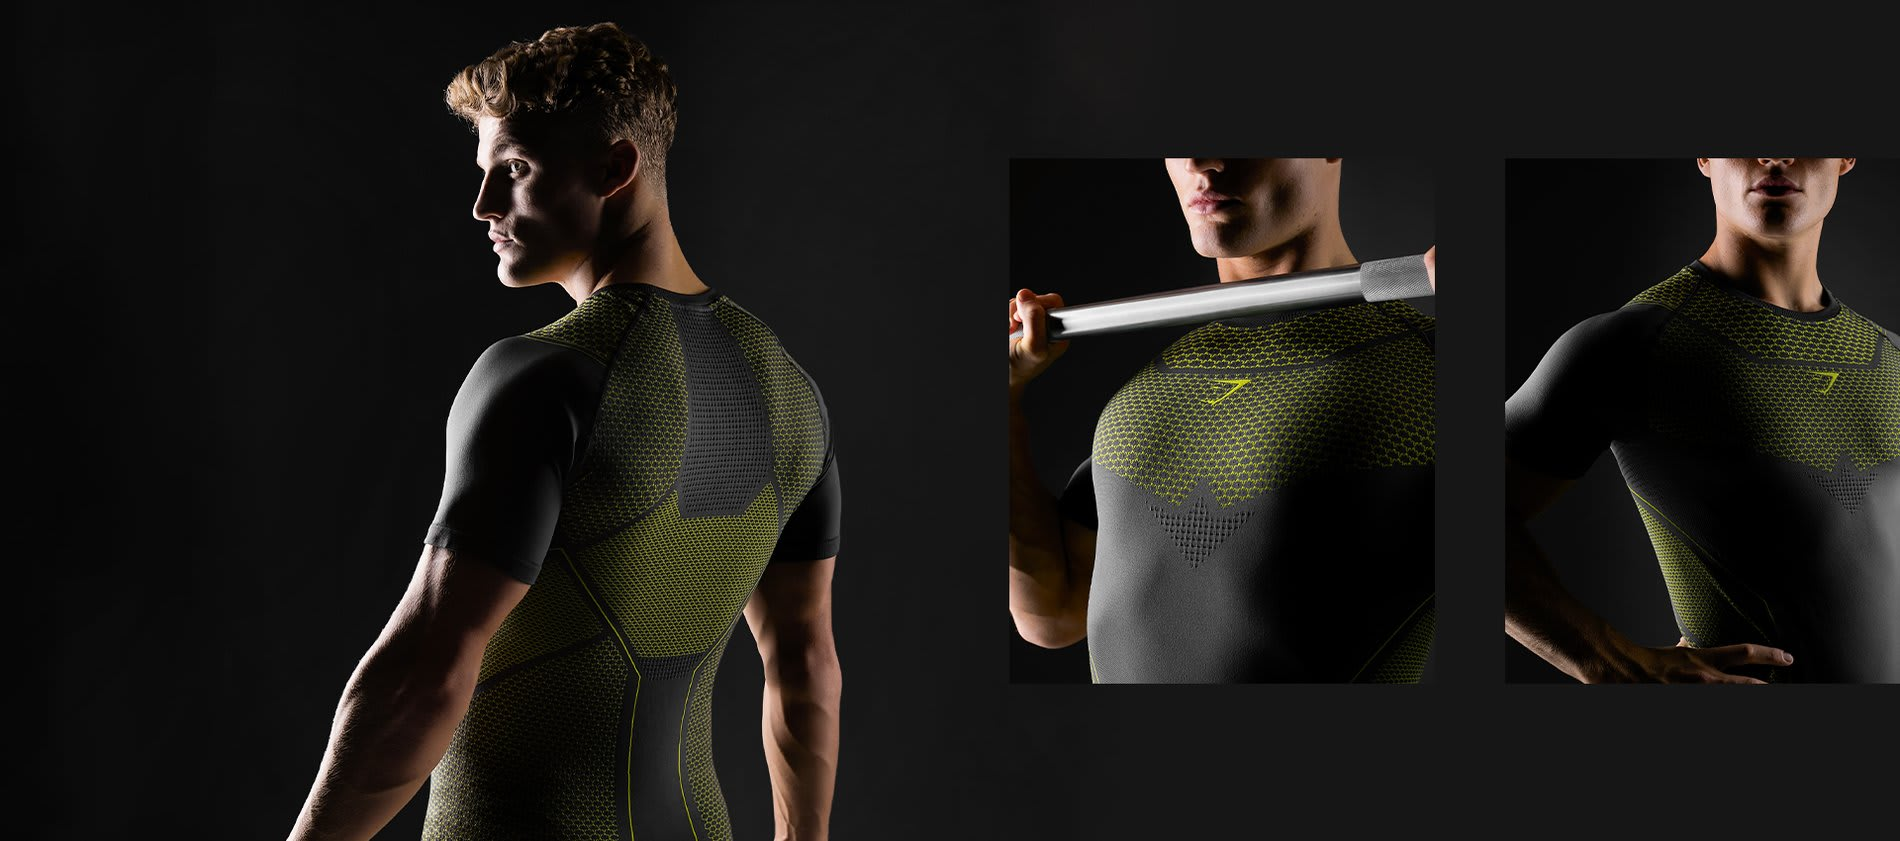 Three images showing off the design of the new Onyx t-shirt in charcoal and lime.